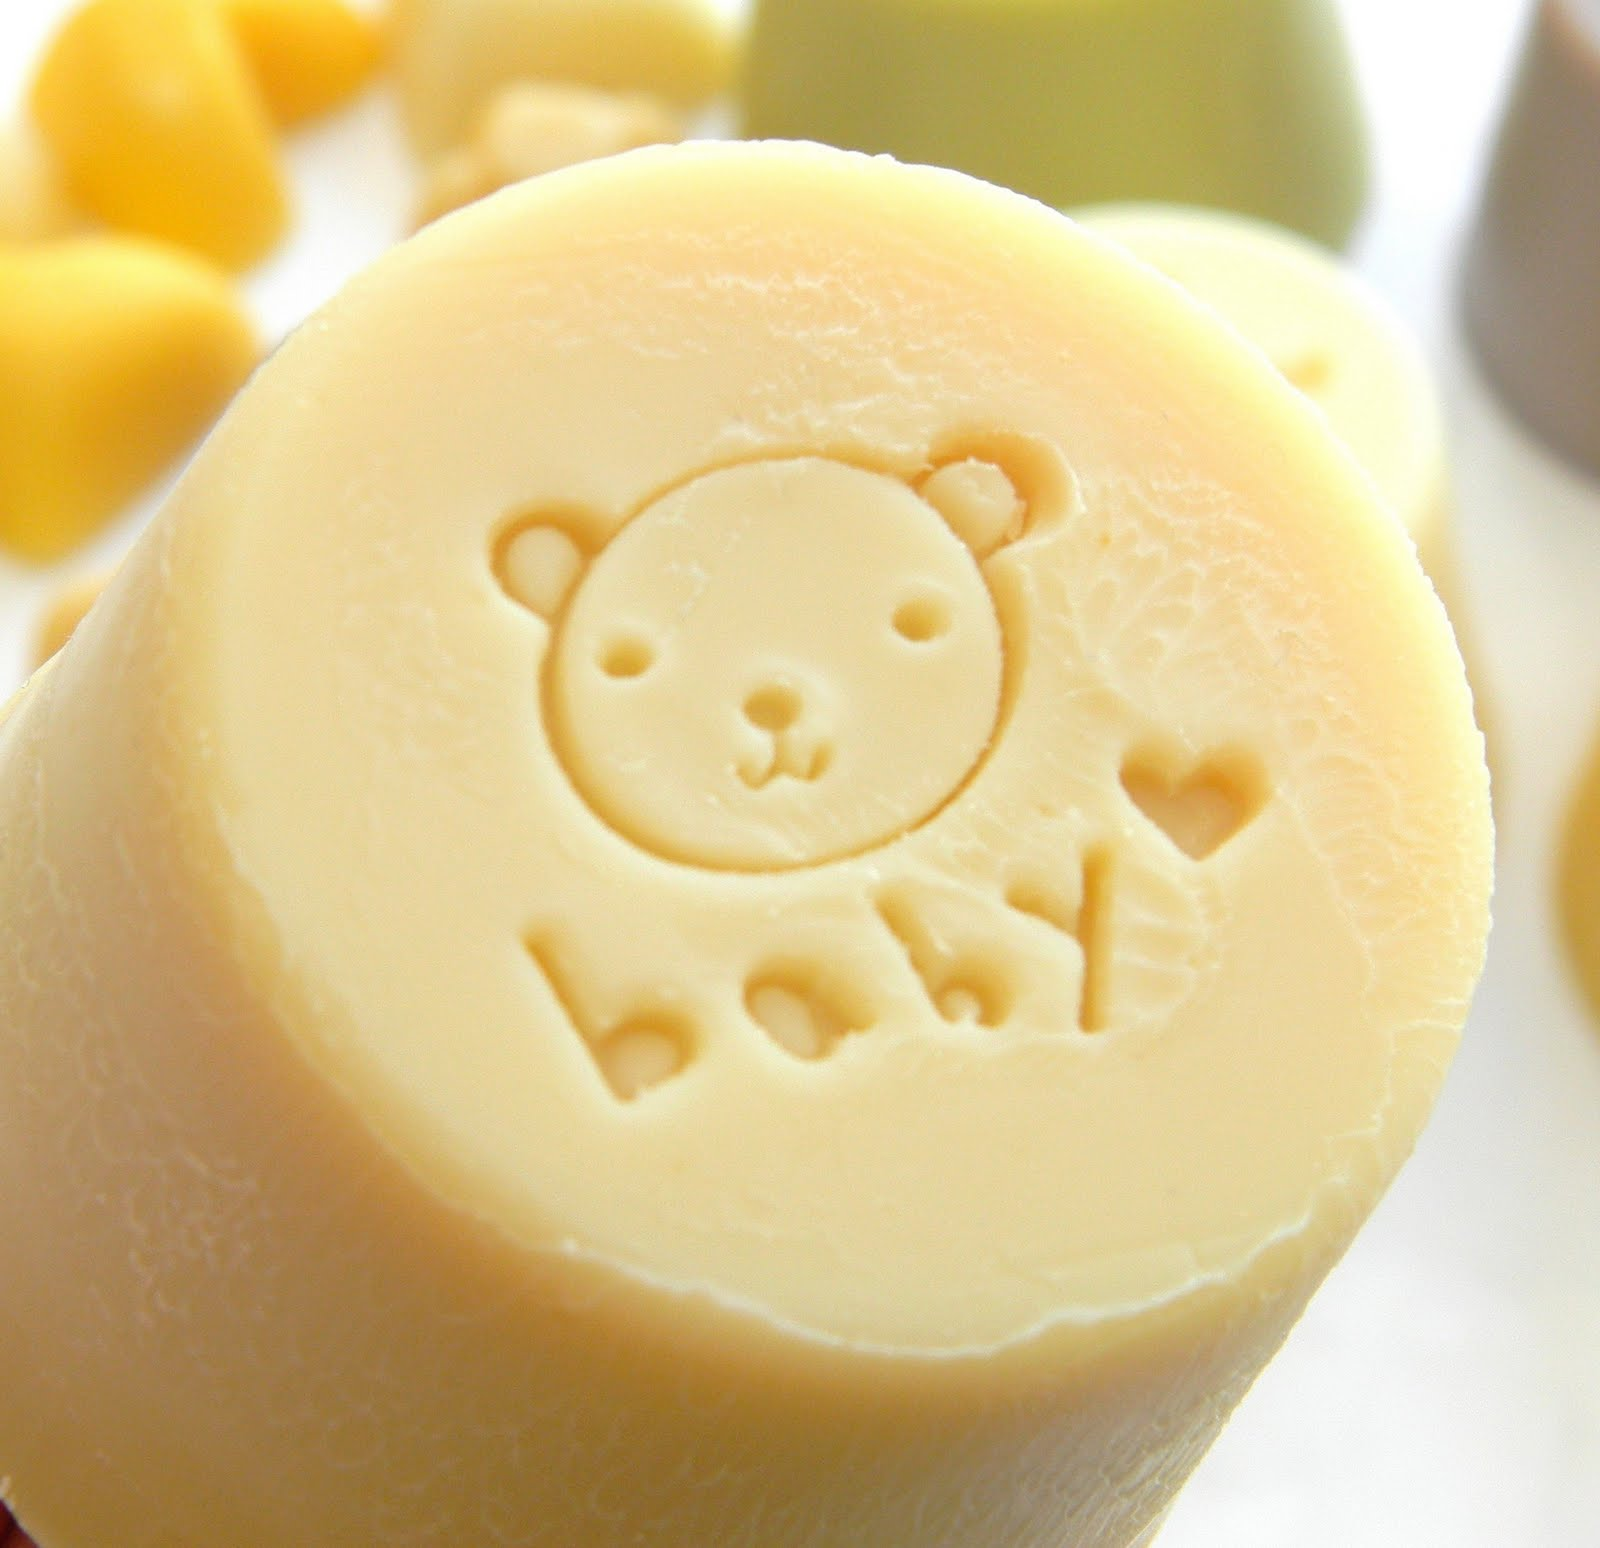 Anita Handmade A Series Of Unscented Baby Soap